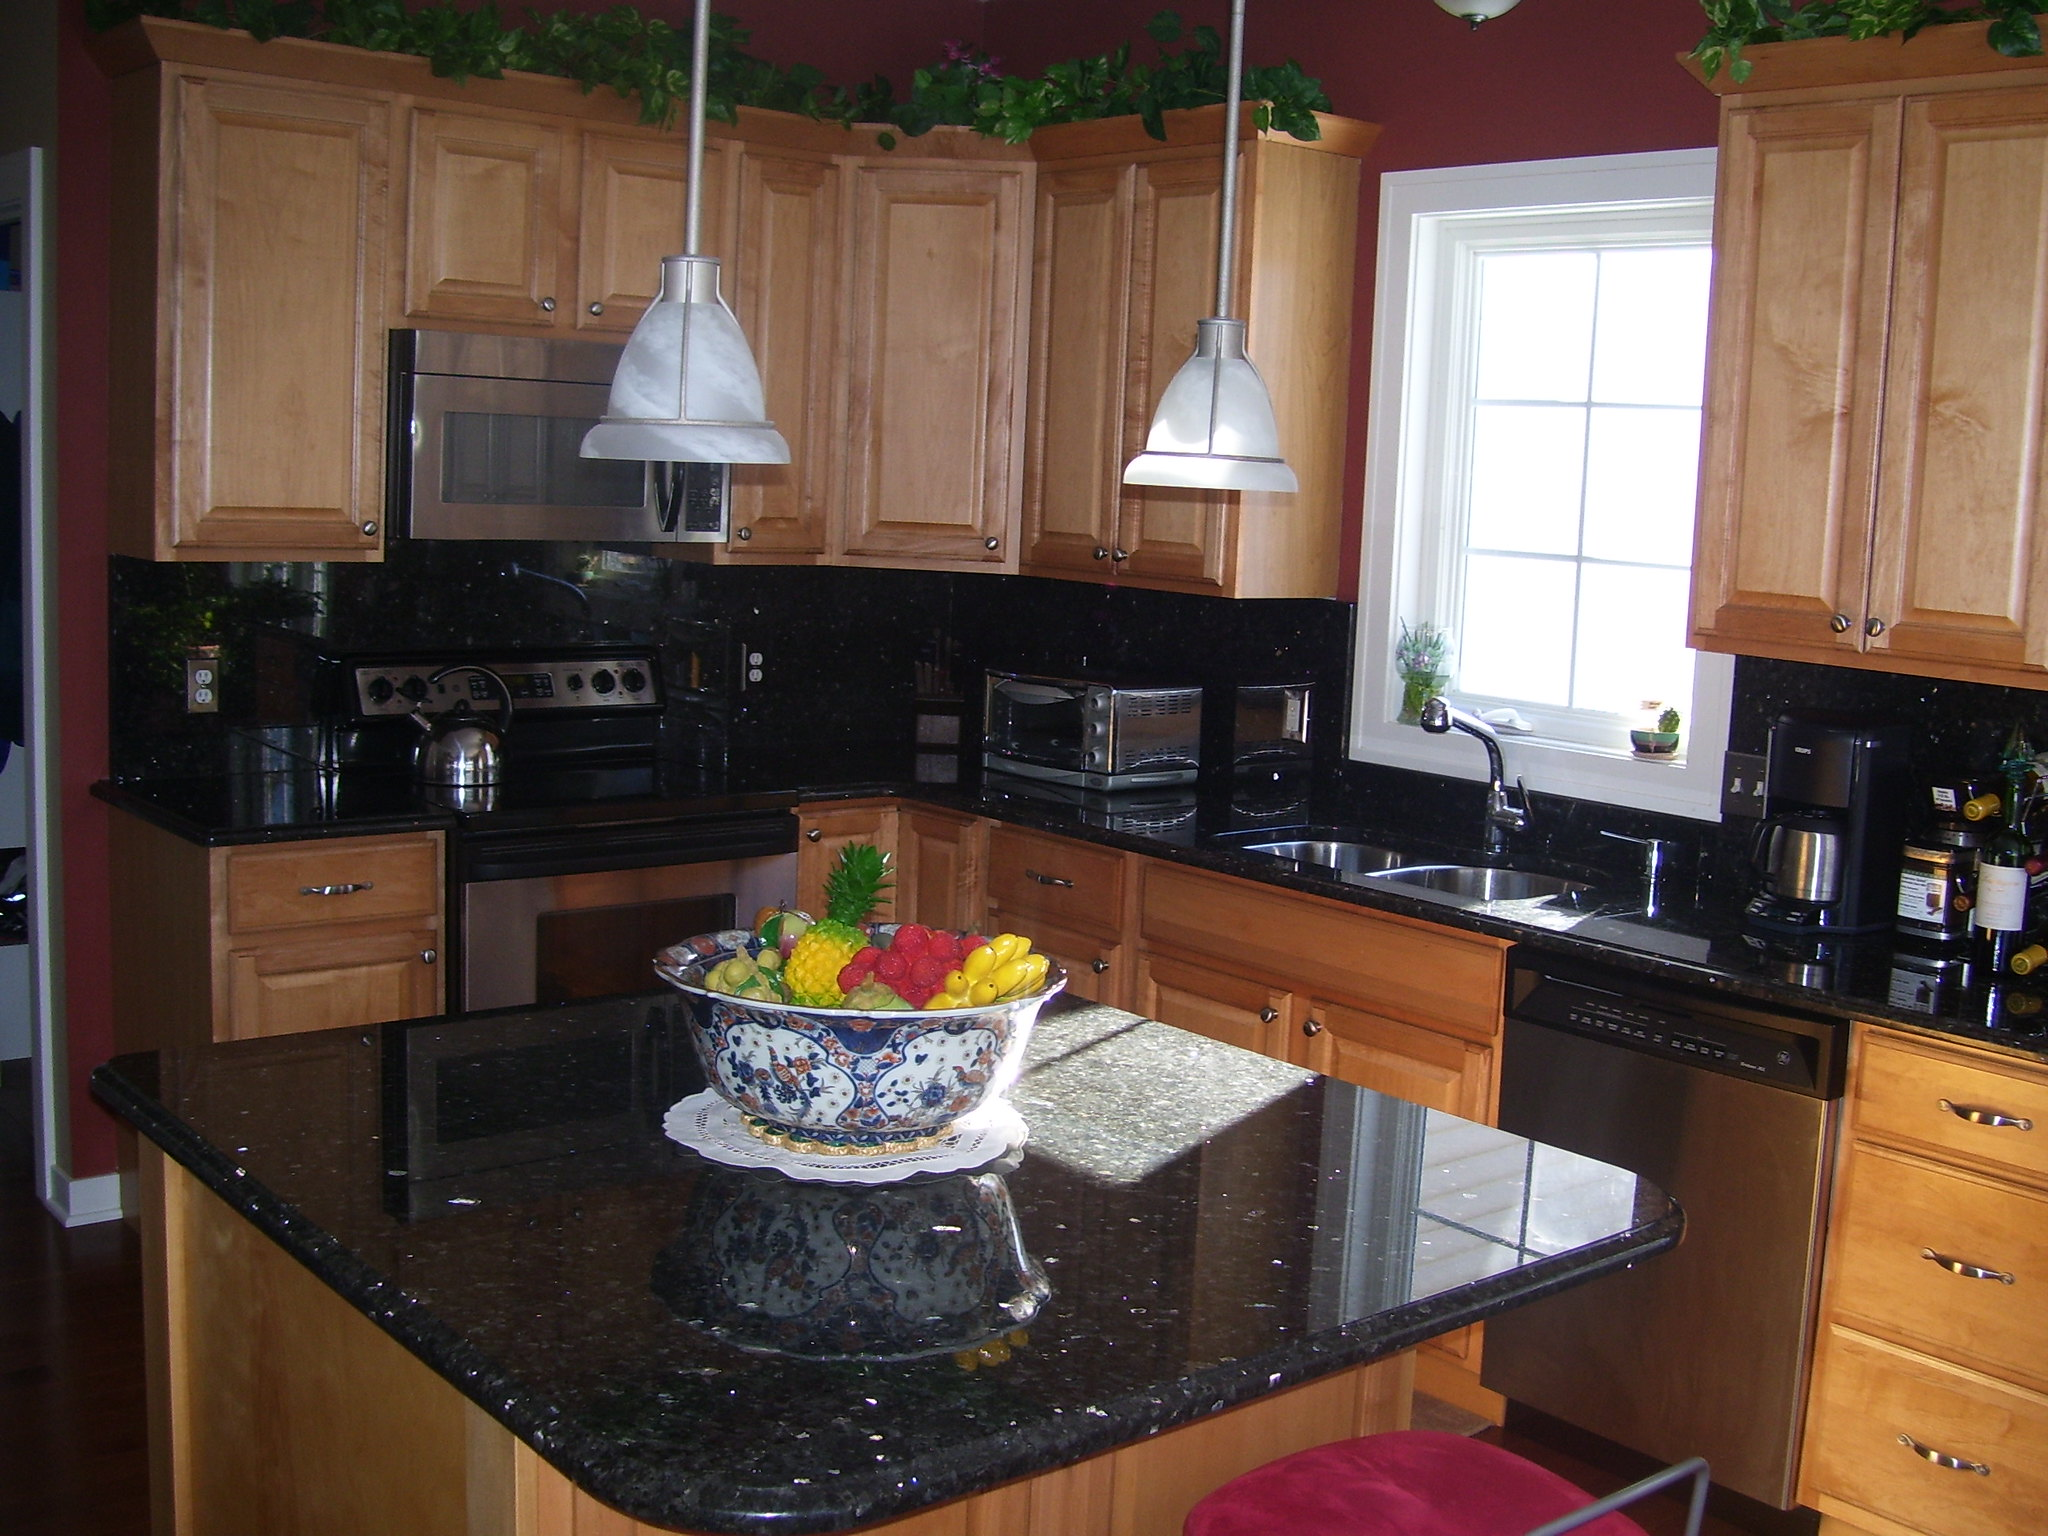 pictures of backsplash in kitchens american kitchen corporation flickr 7439